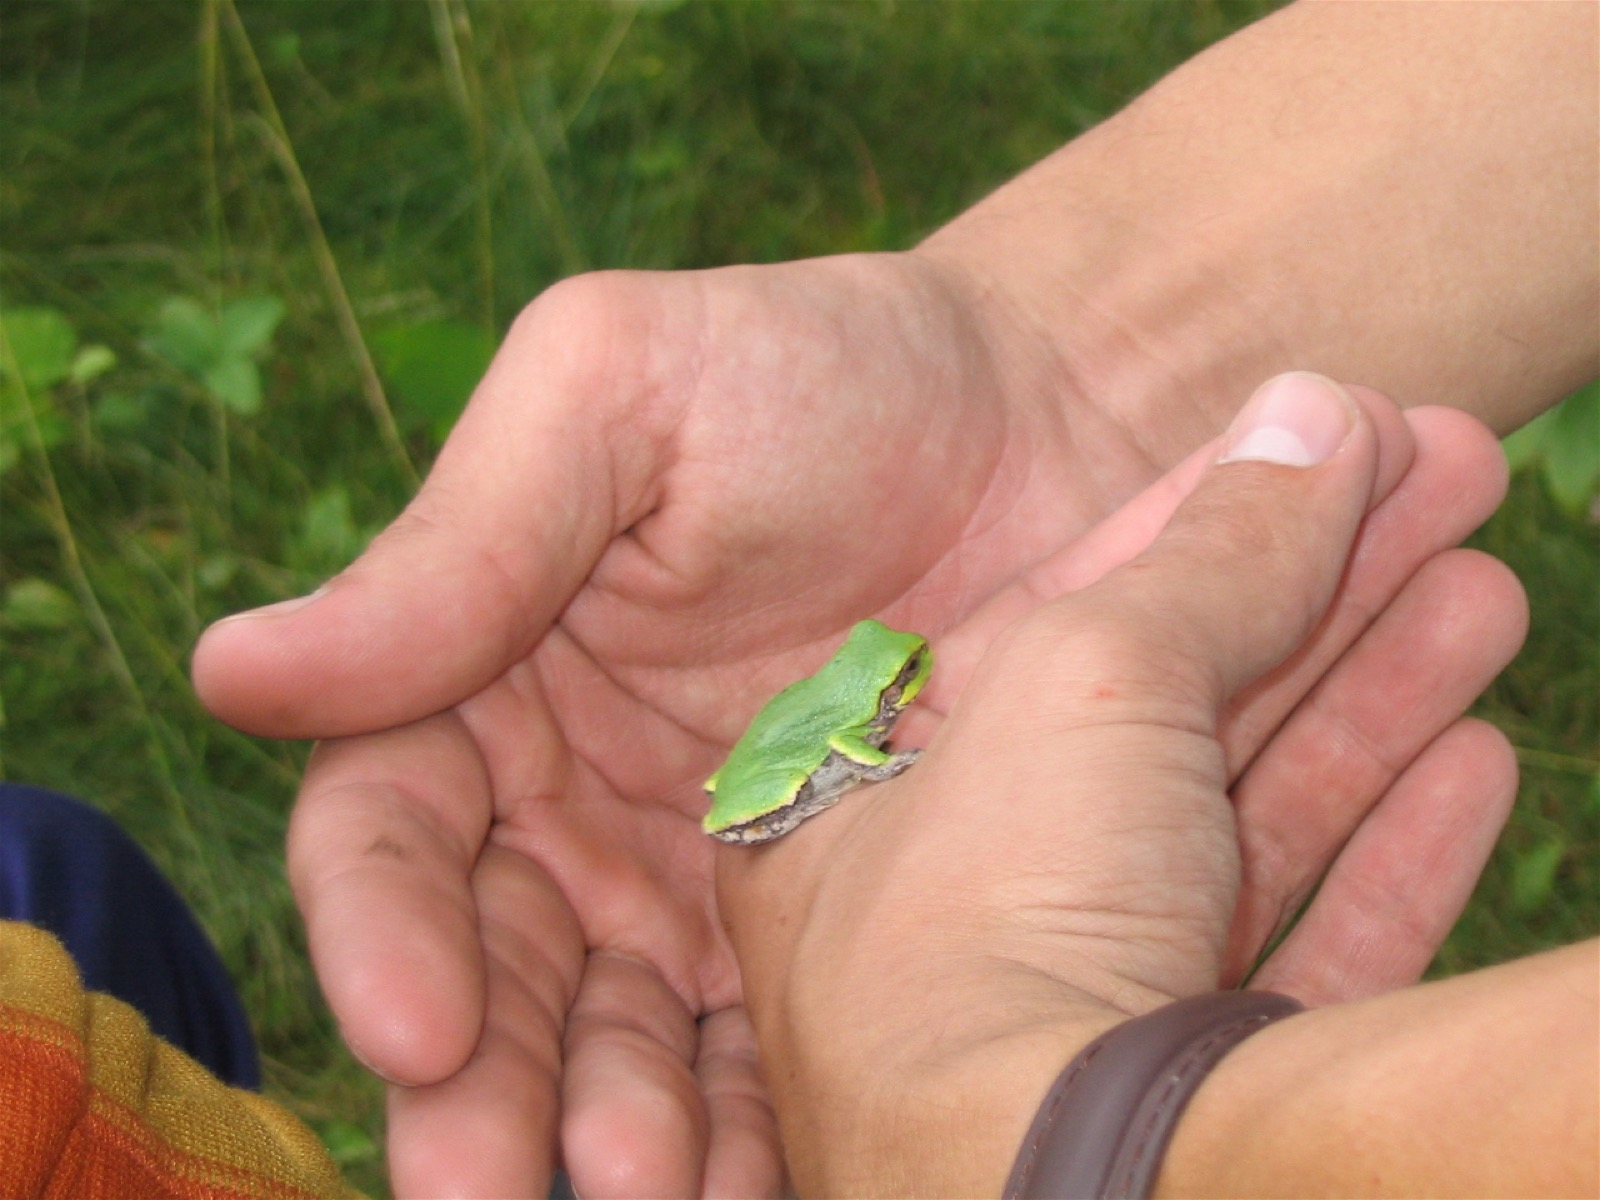 A close-up of two hands holding a small, lime green tree frog.